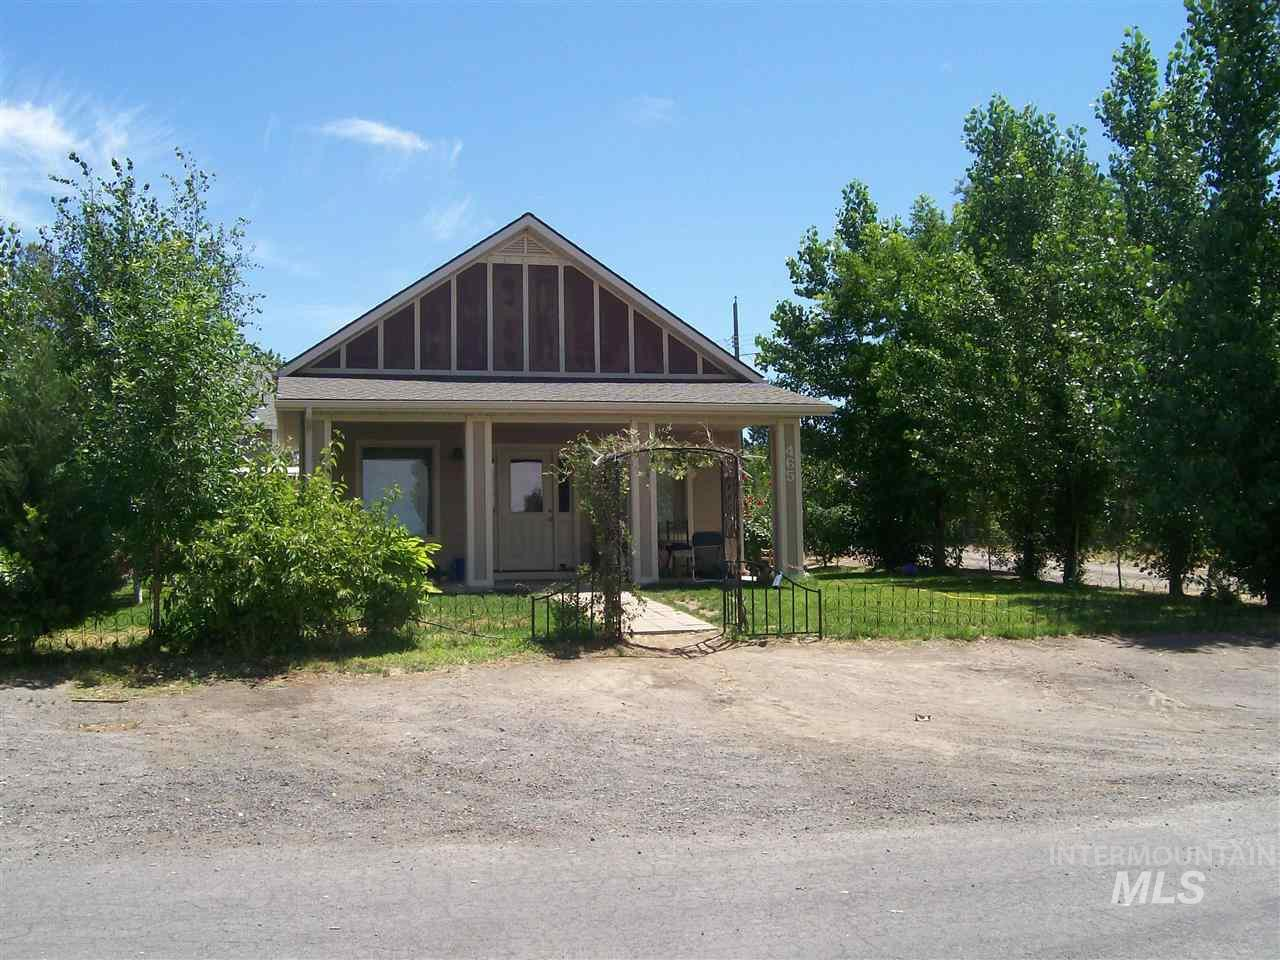 465 3rd Ave. North, Hagerman, ID 83332